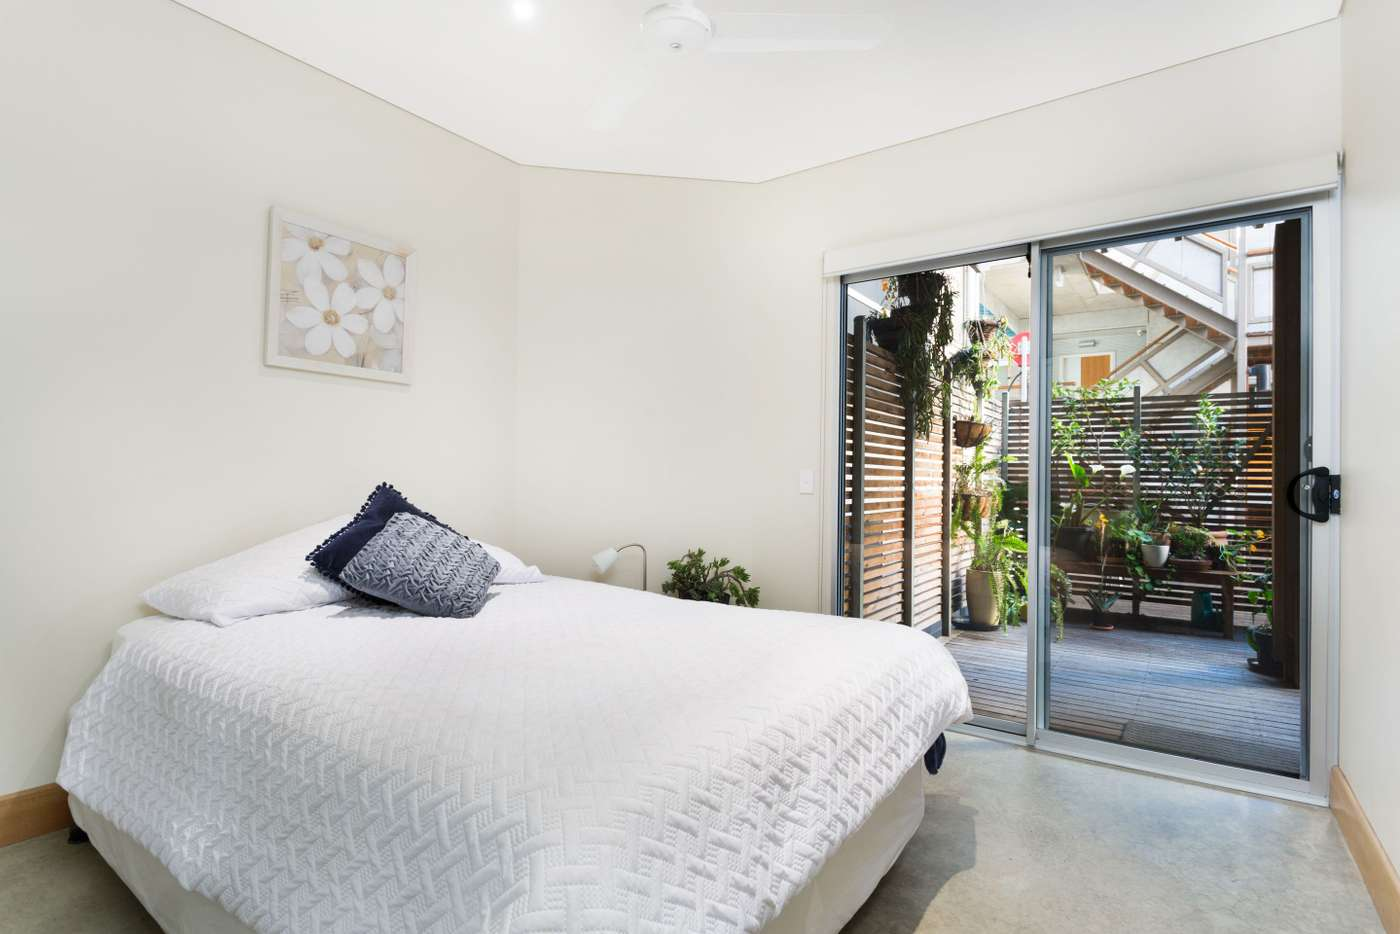 Sixth view of Homely townhouse listing, 10/44 Whitmore Square, Adelaide SA 5000